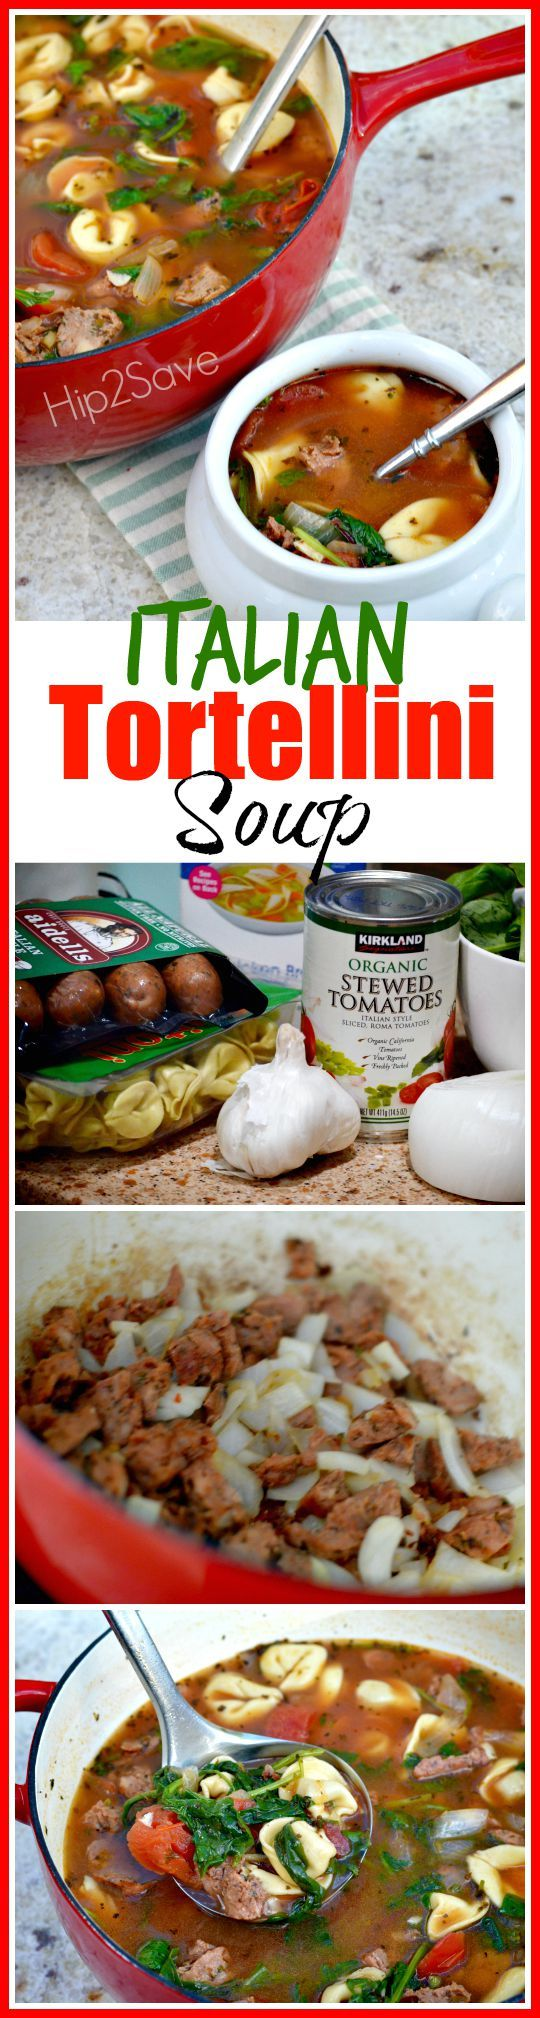 Italian Tortellini Soup (Easy to Make)  12 oz. Chicken Sausage, casings removed 1 – 9oz package store bought cheese Tortellini 1/2 medium onion, chopped 6 cloves garlic, diced 1 can stewed tomatoes, sliced, undrained 2 cans (14-1/2 ounces each) reduced-sodium chicken broth 1 and 3/4 cups water 6 oz. fresh spinach, coarsely chopped 1 teaspoon Italian Seasoning 1/4 teaspoon red pepper flakes salt & pepper to taste